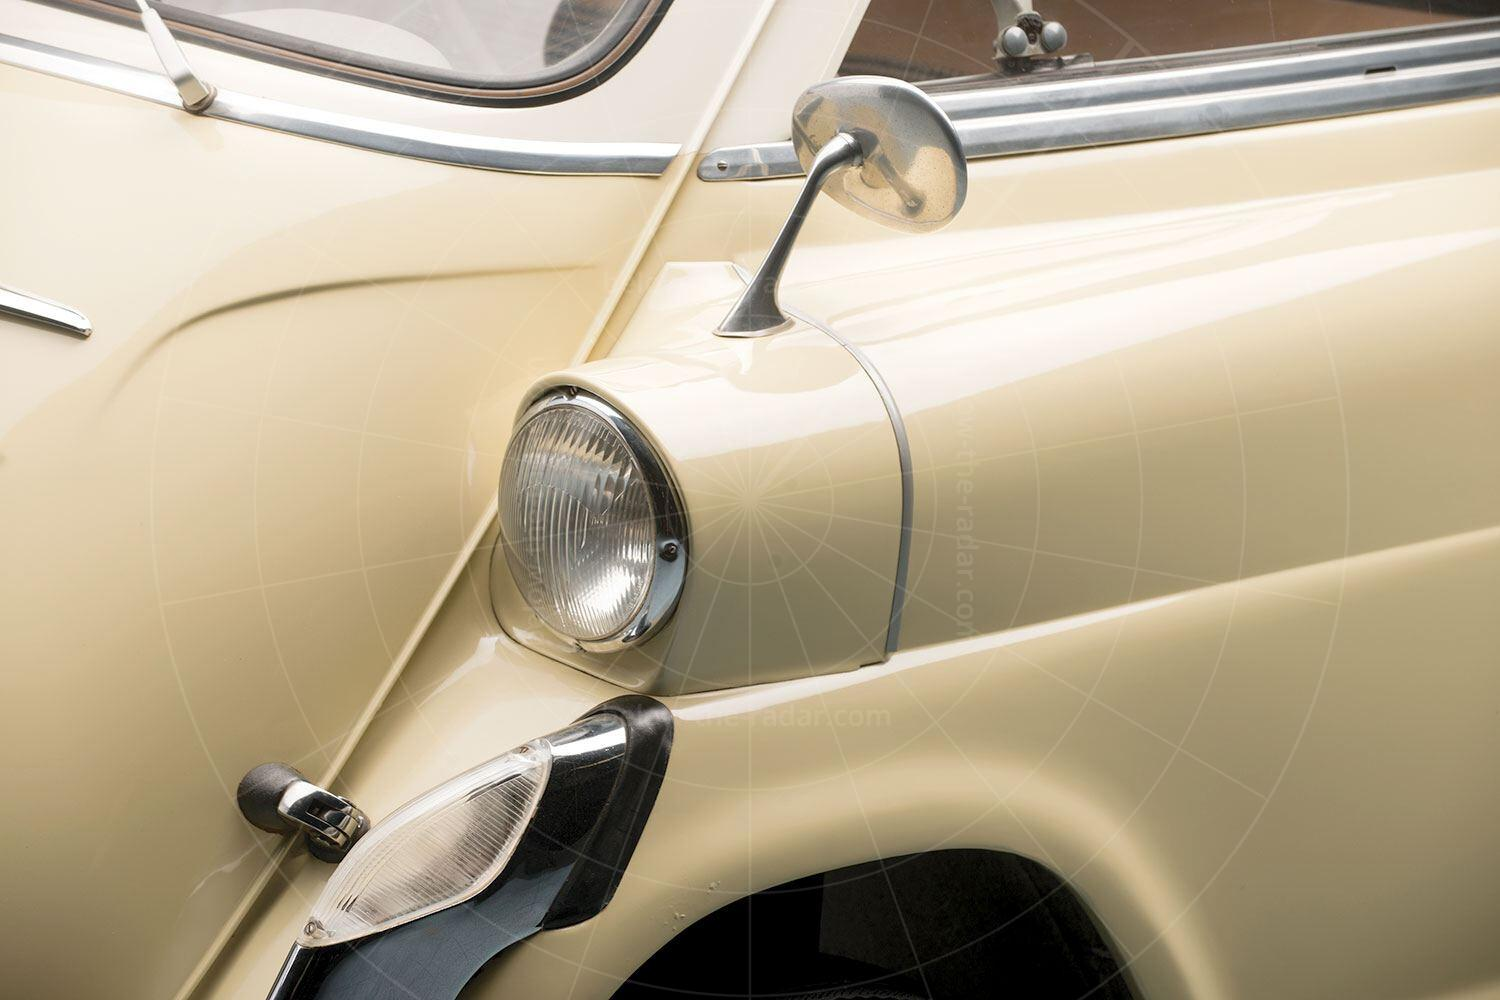 BMW 600 Pic: RM Sotheby's | BMW 600